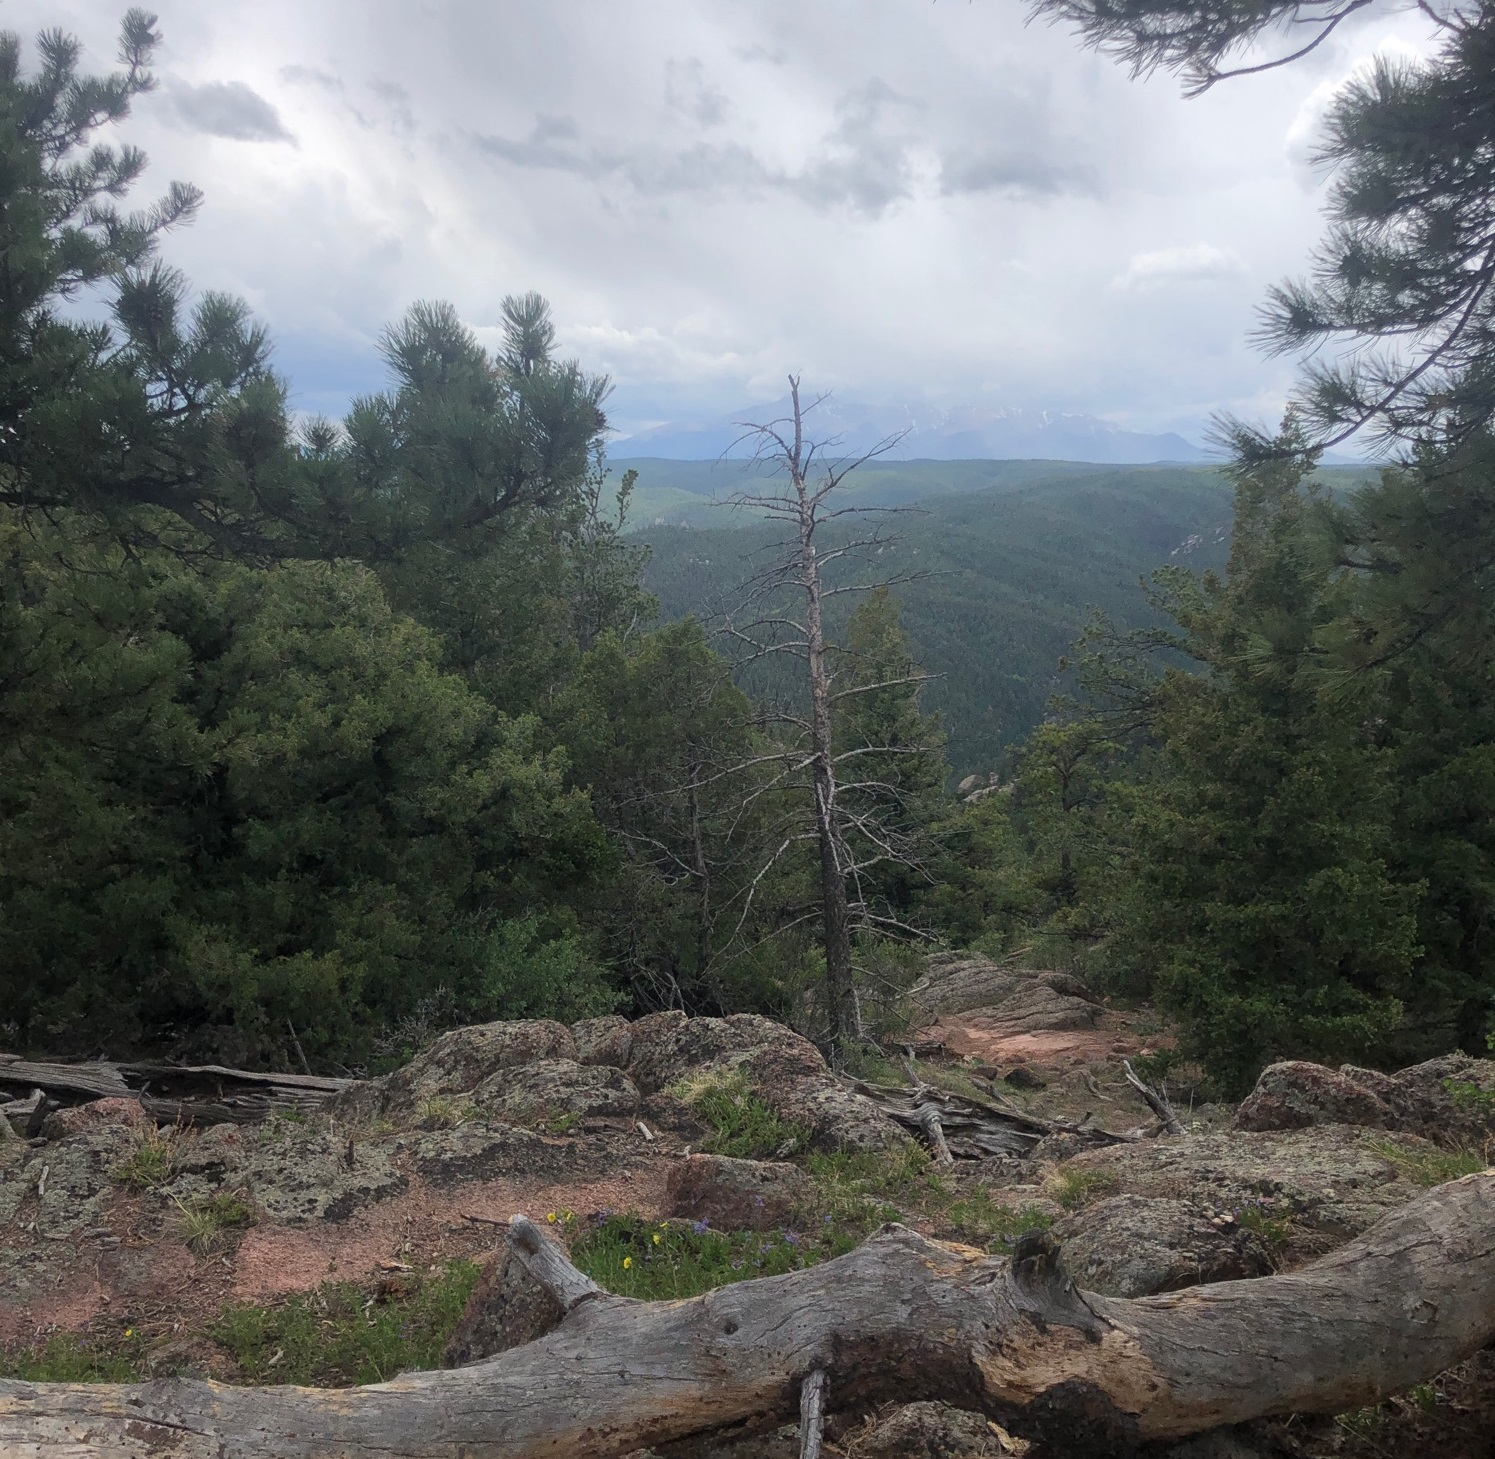 The Mt. Herman Hike is one place to check out for a challenging climb.